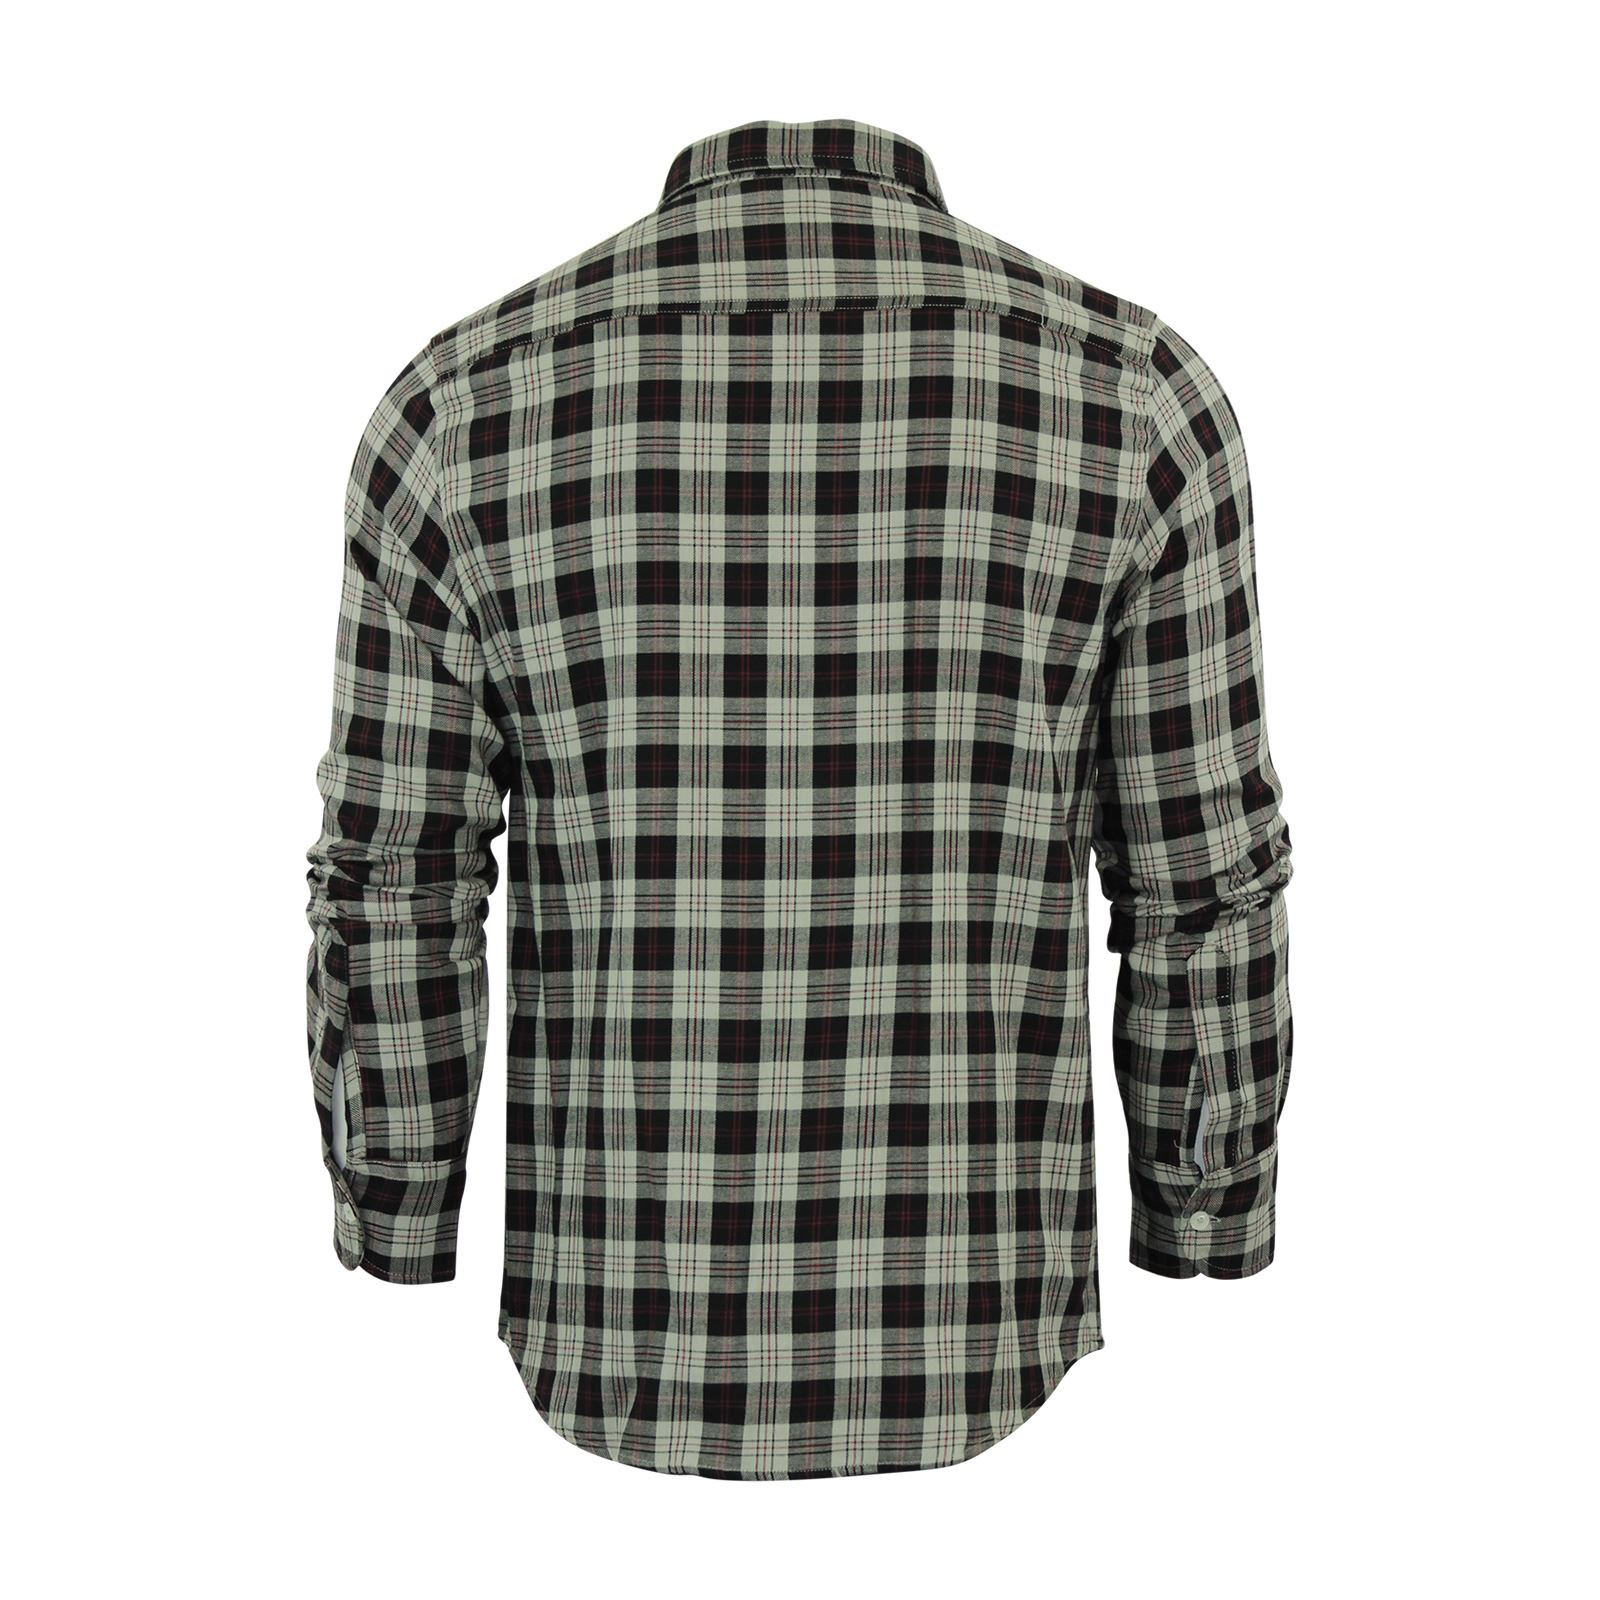 Mens-Check-Shirt-Brave-Soul-Flannel-Brushed-Cotton-Long-Sleeve-Casual-Top thumbnail 57